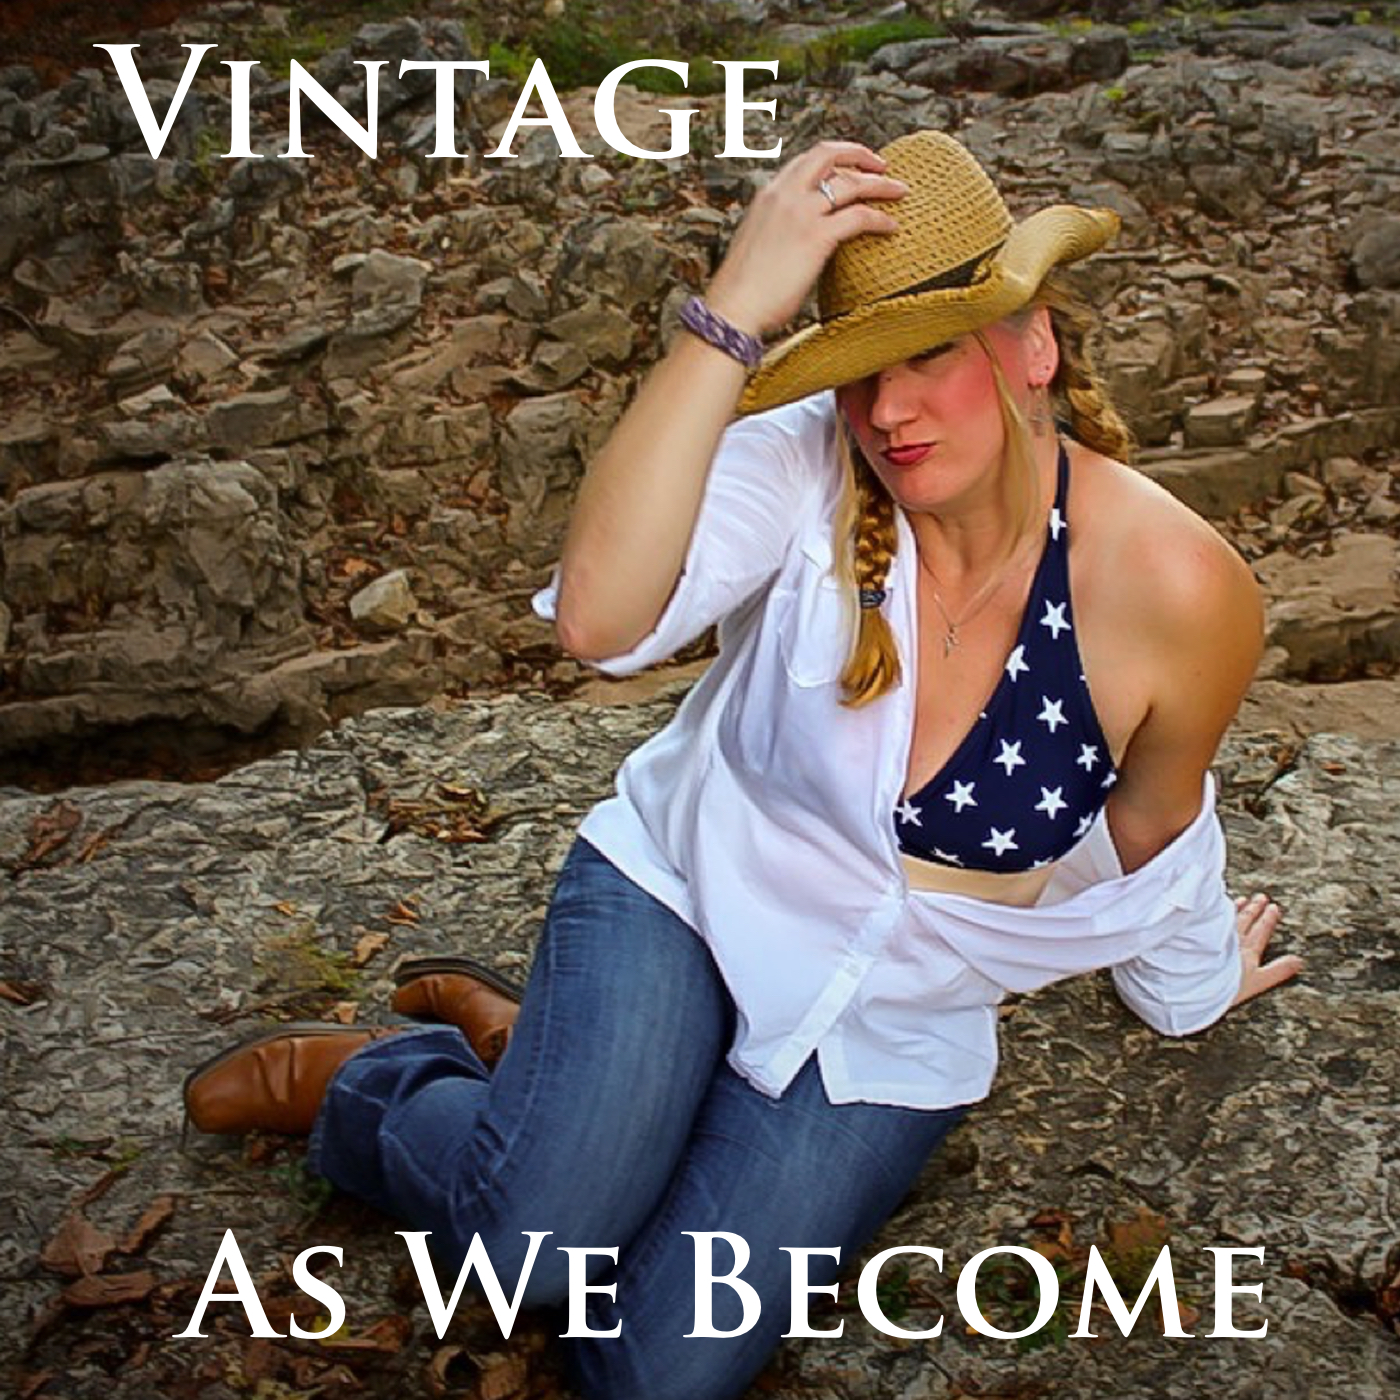 Vintage - As We Become